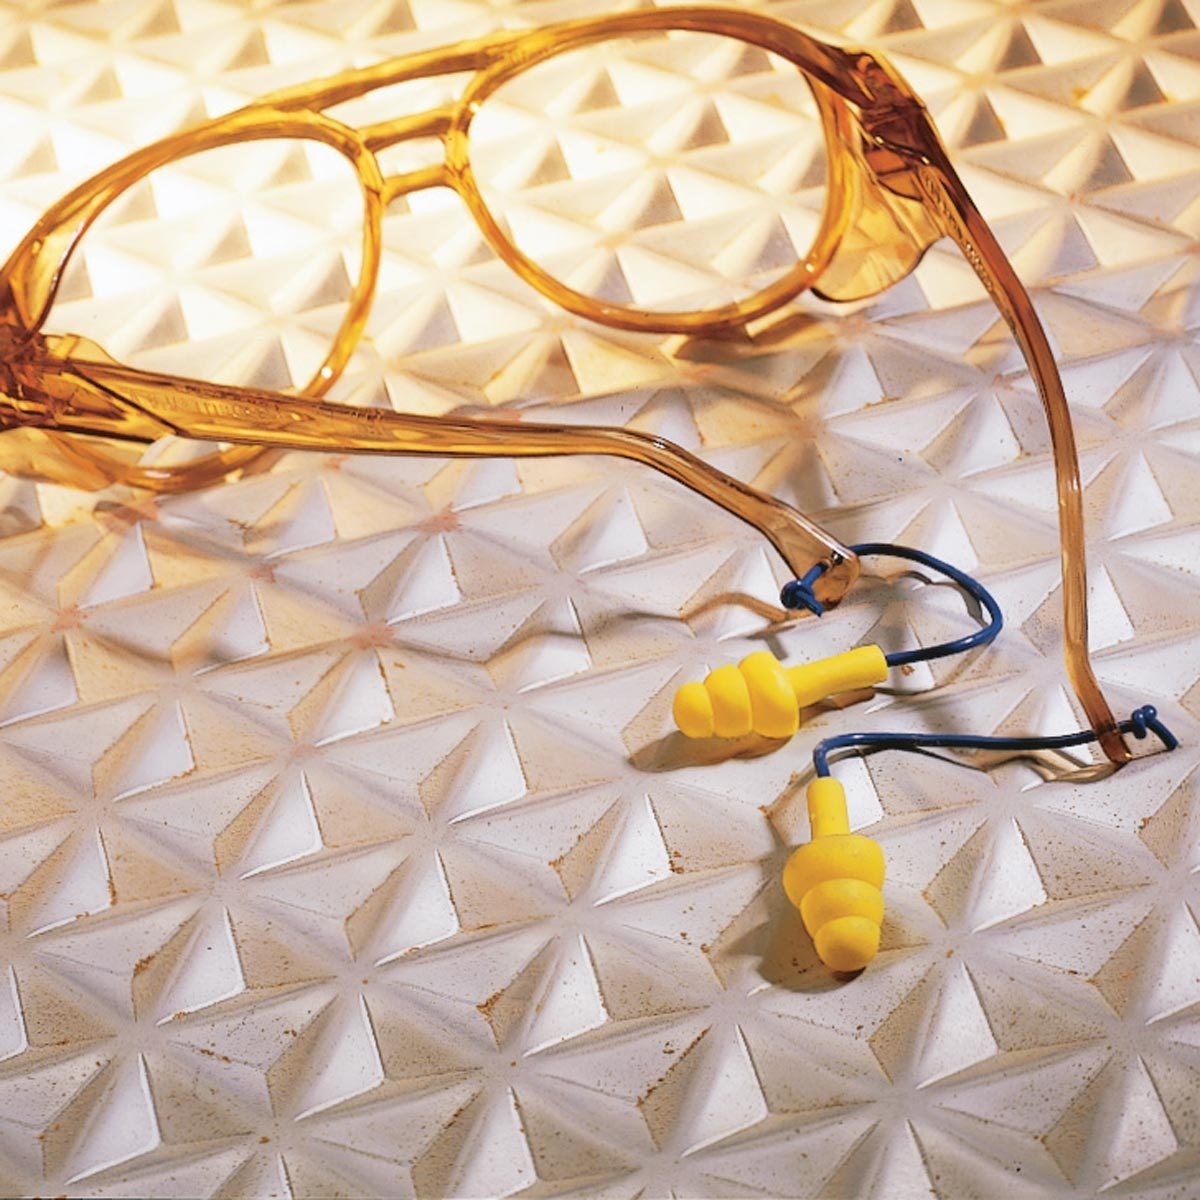 5298ef1fda2 Safety Glasses With Ear Plugs - Image Of Glasses